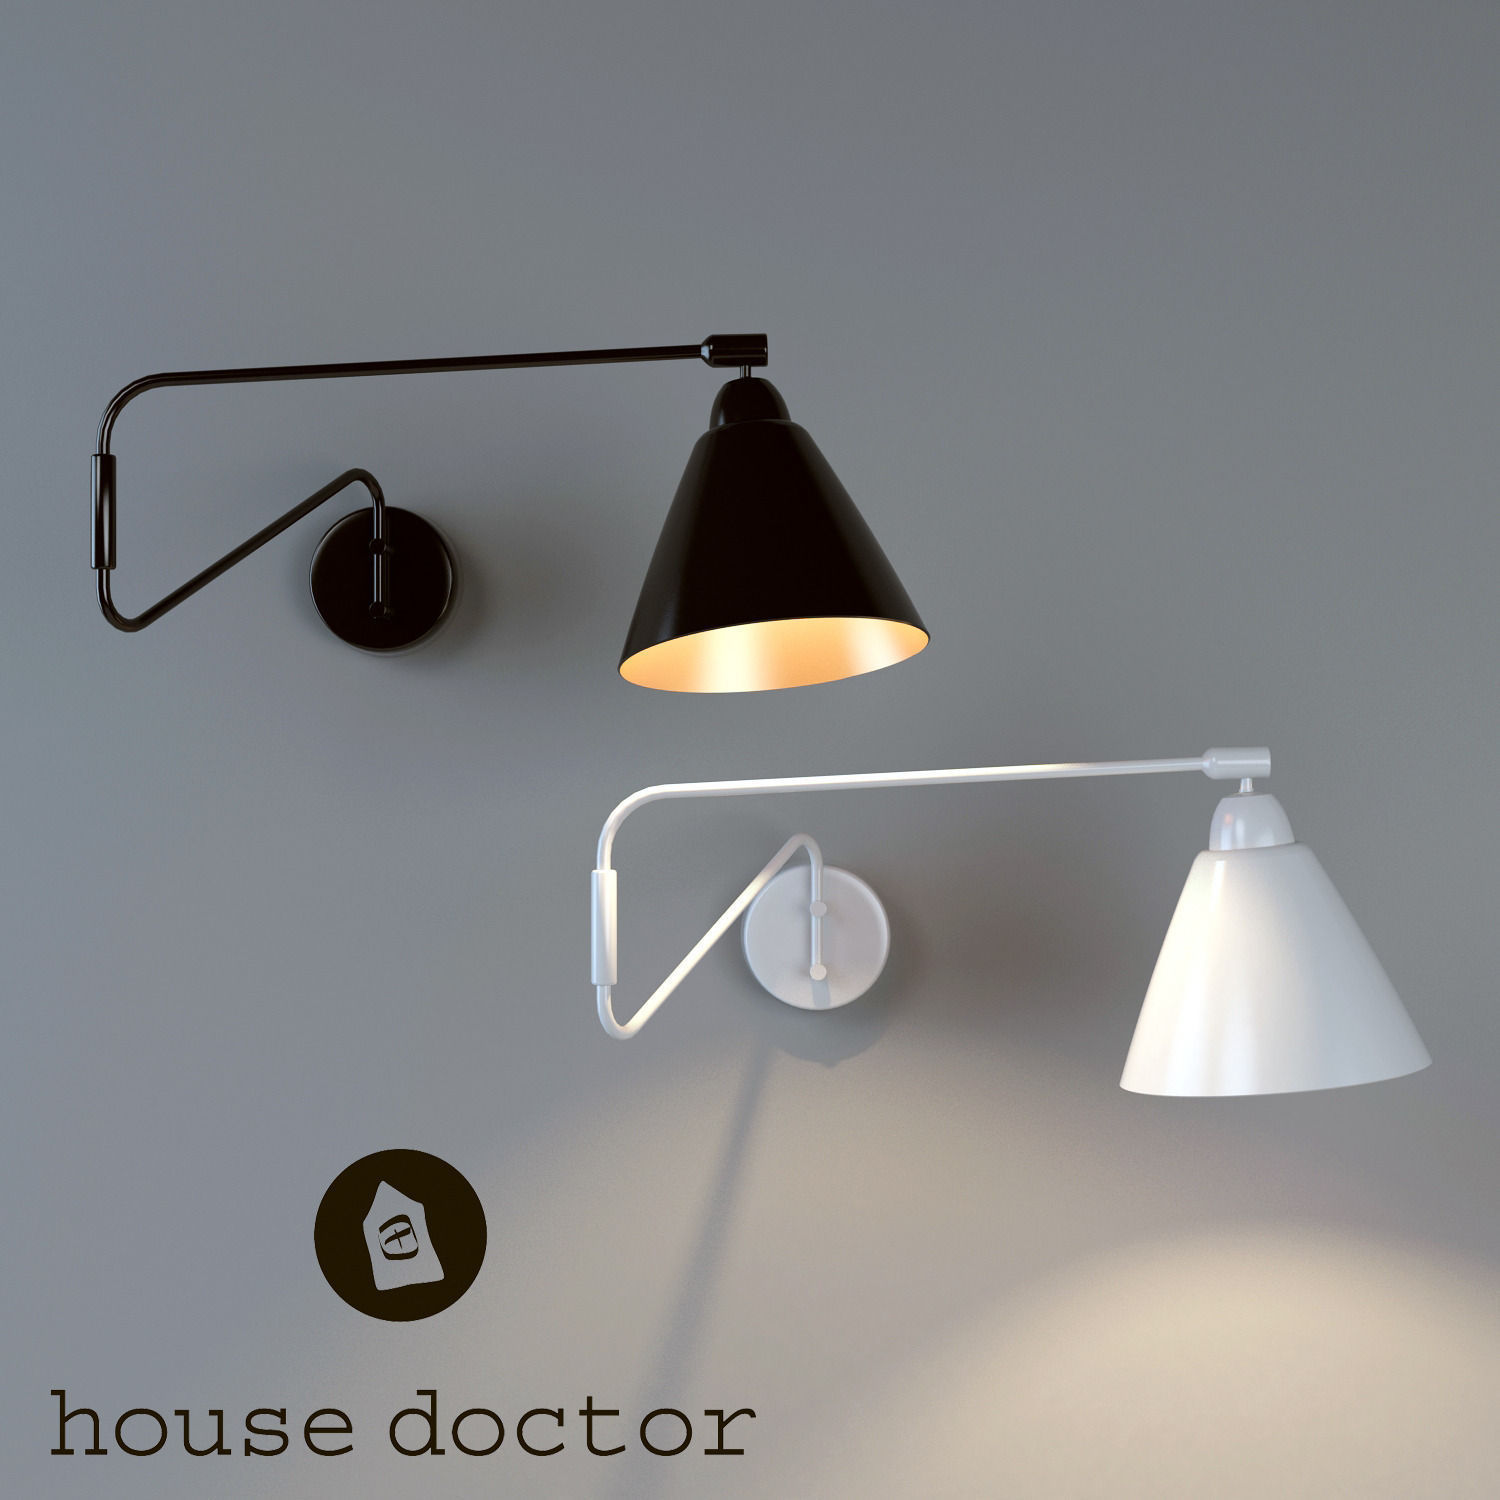 wall lamp house doctor 3d model max. Black Bedroom Furniture Sets. Home Design Ideas